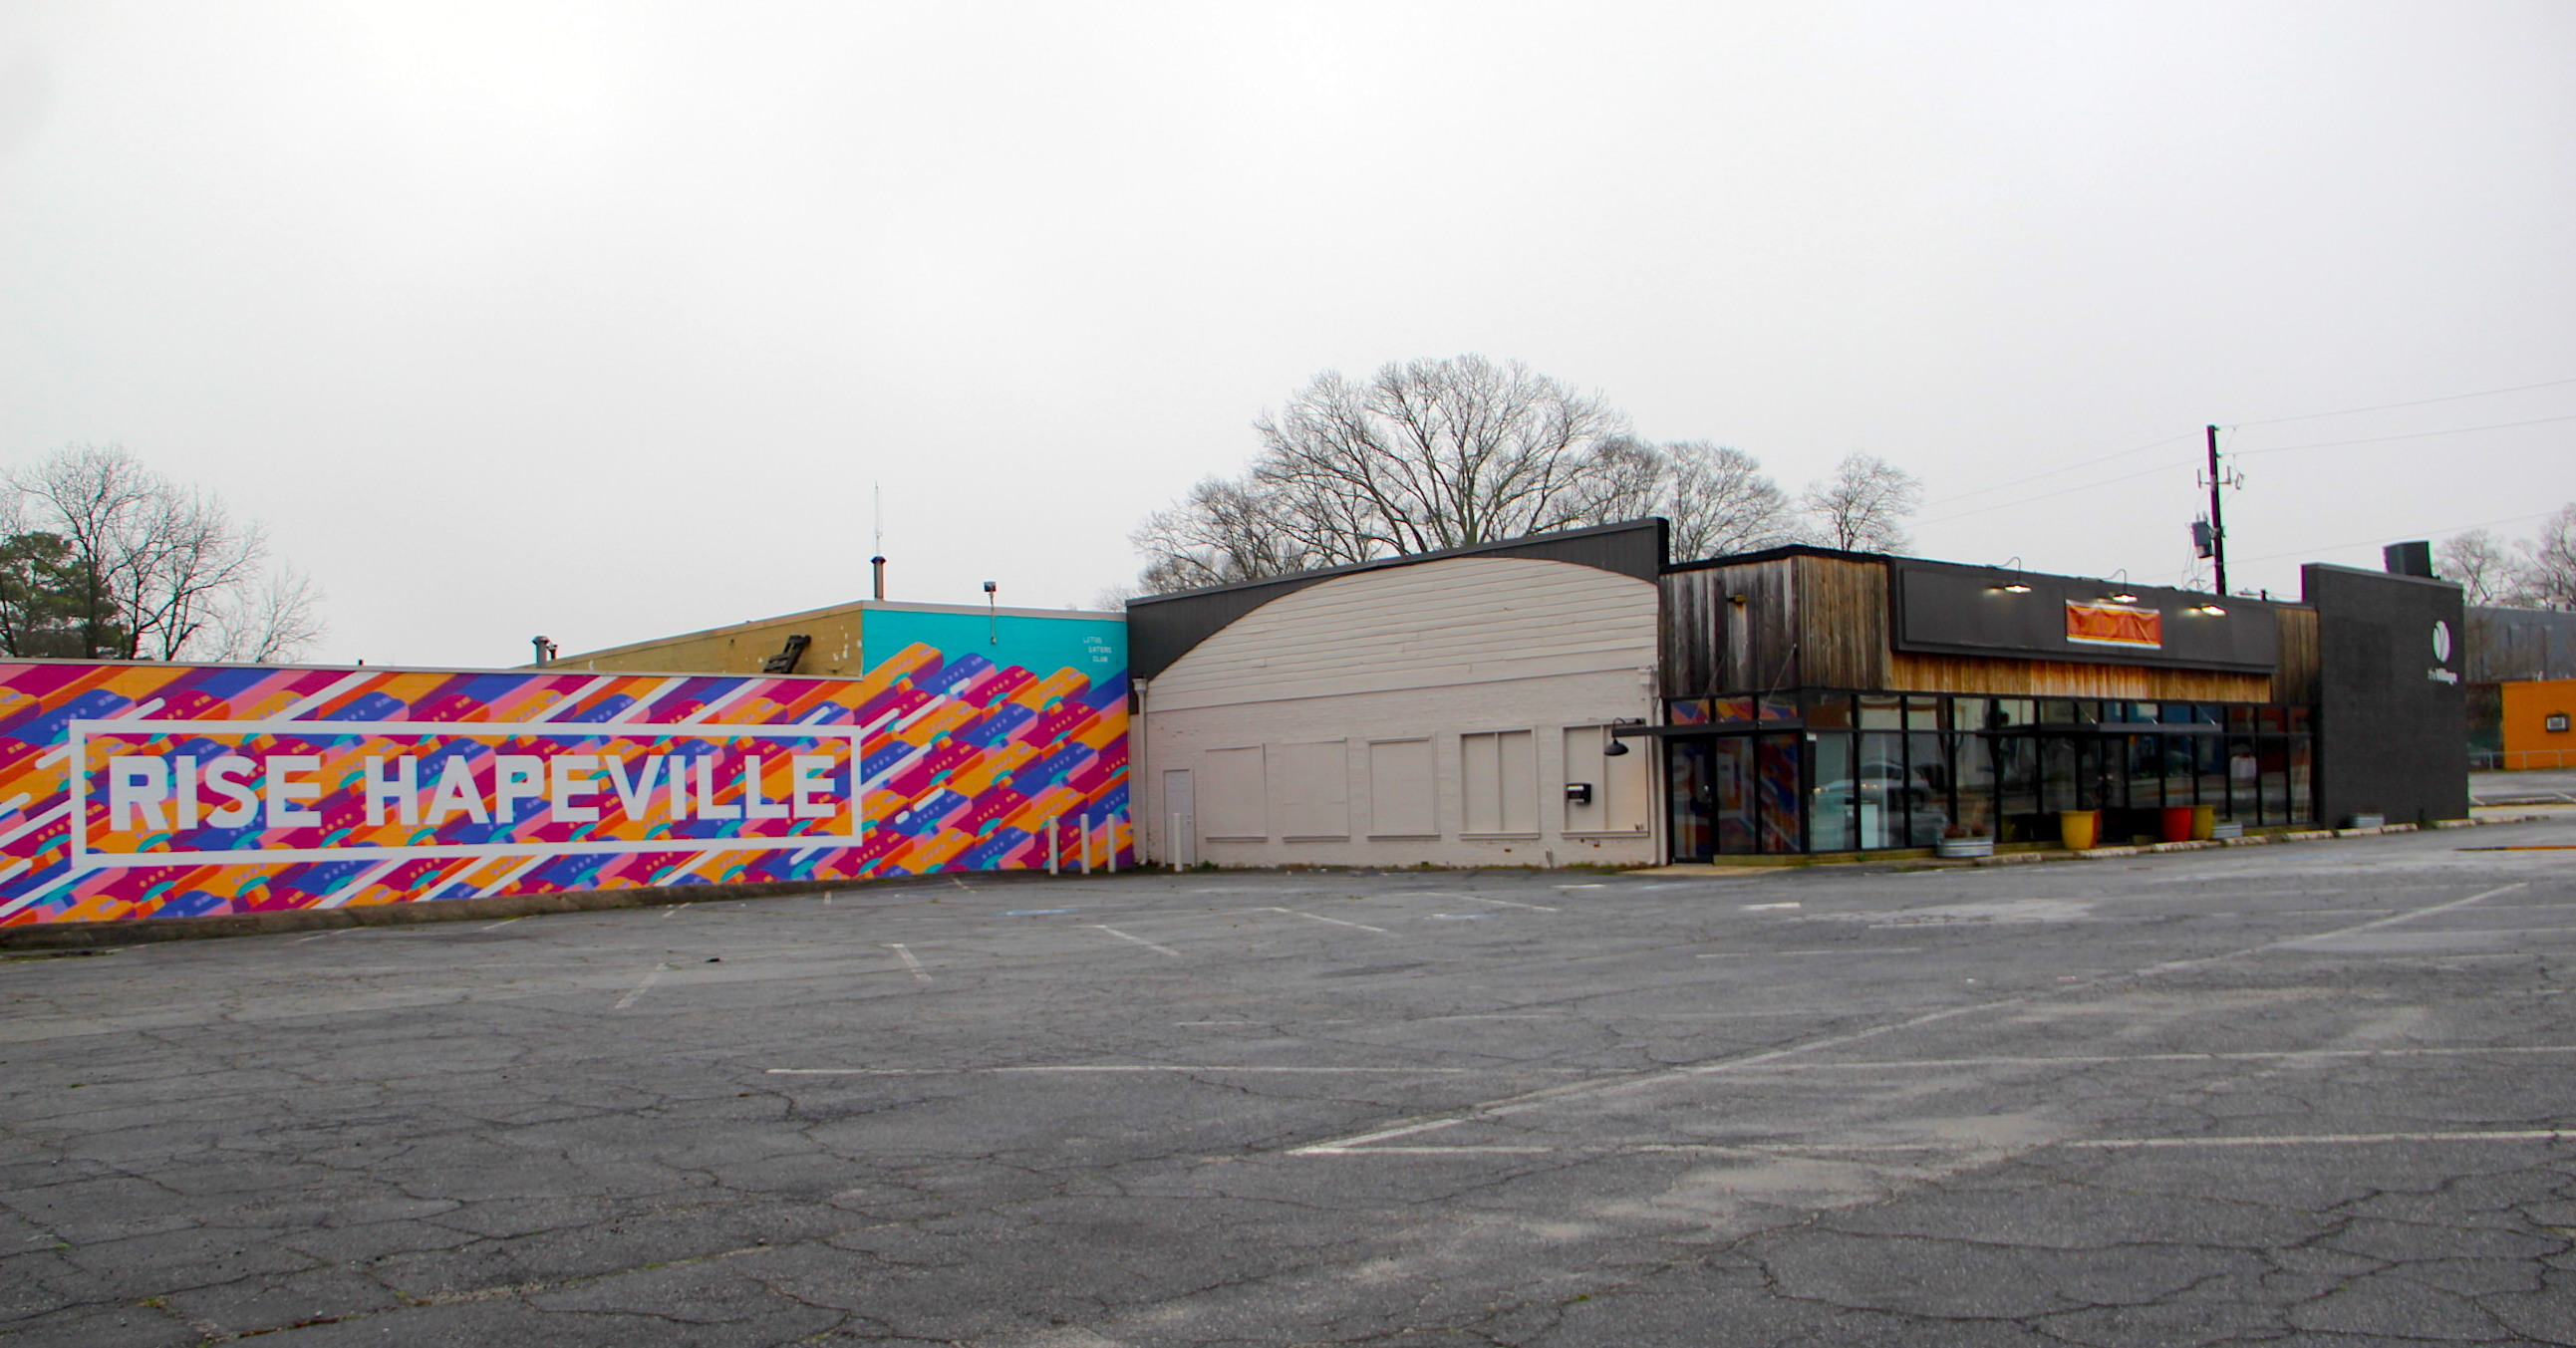 A parking lot with a building at right and colorful wall mural.